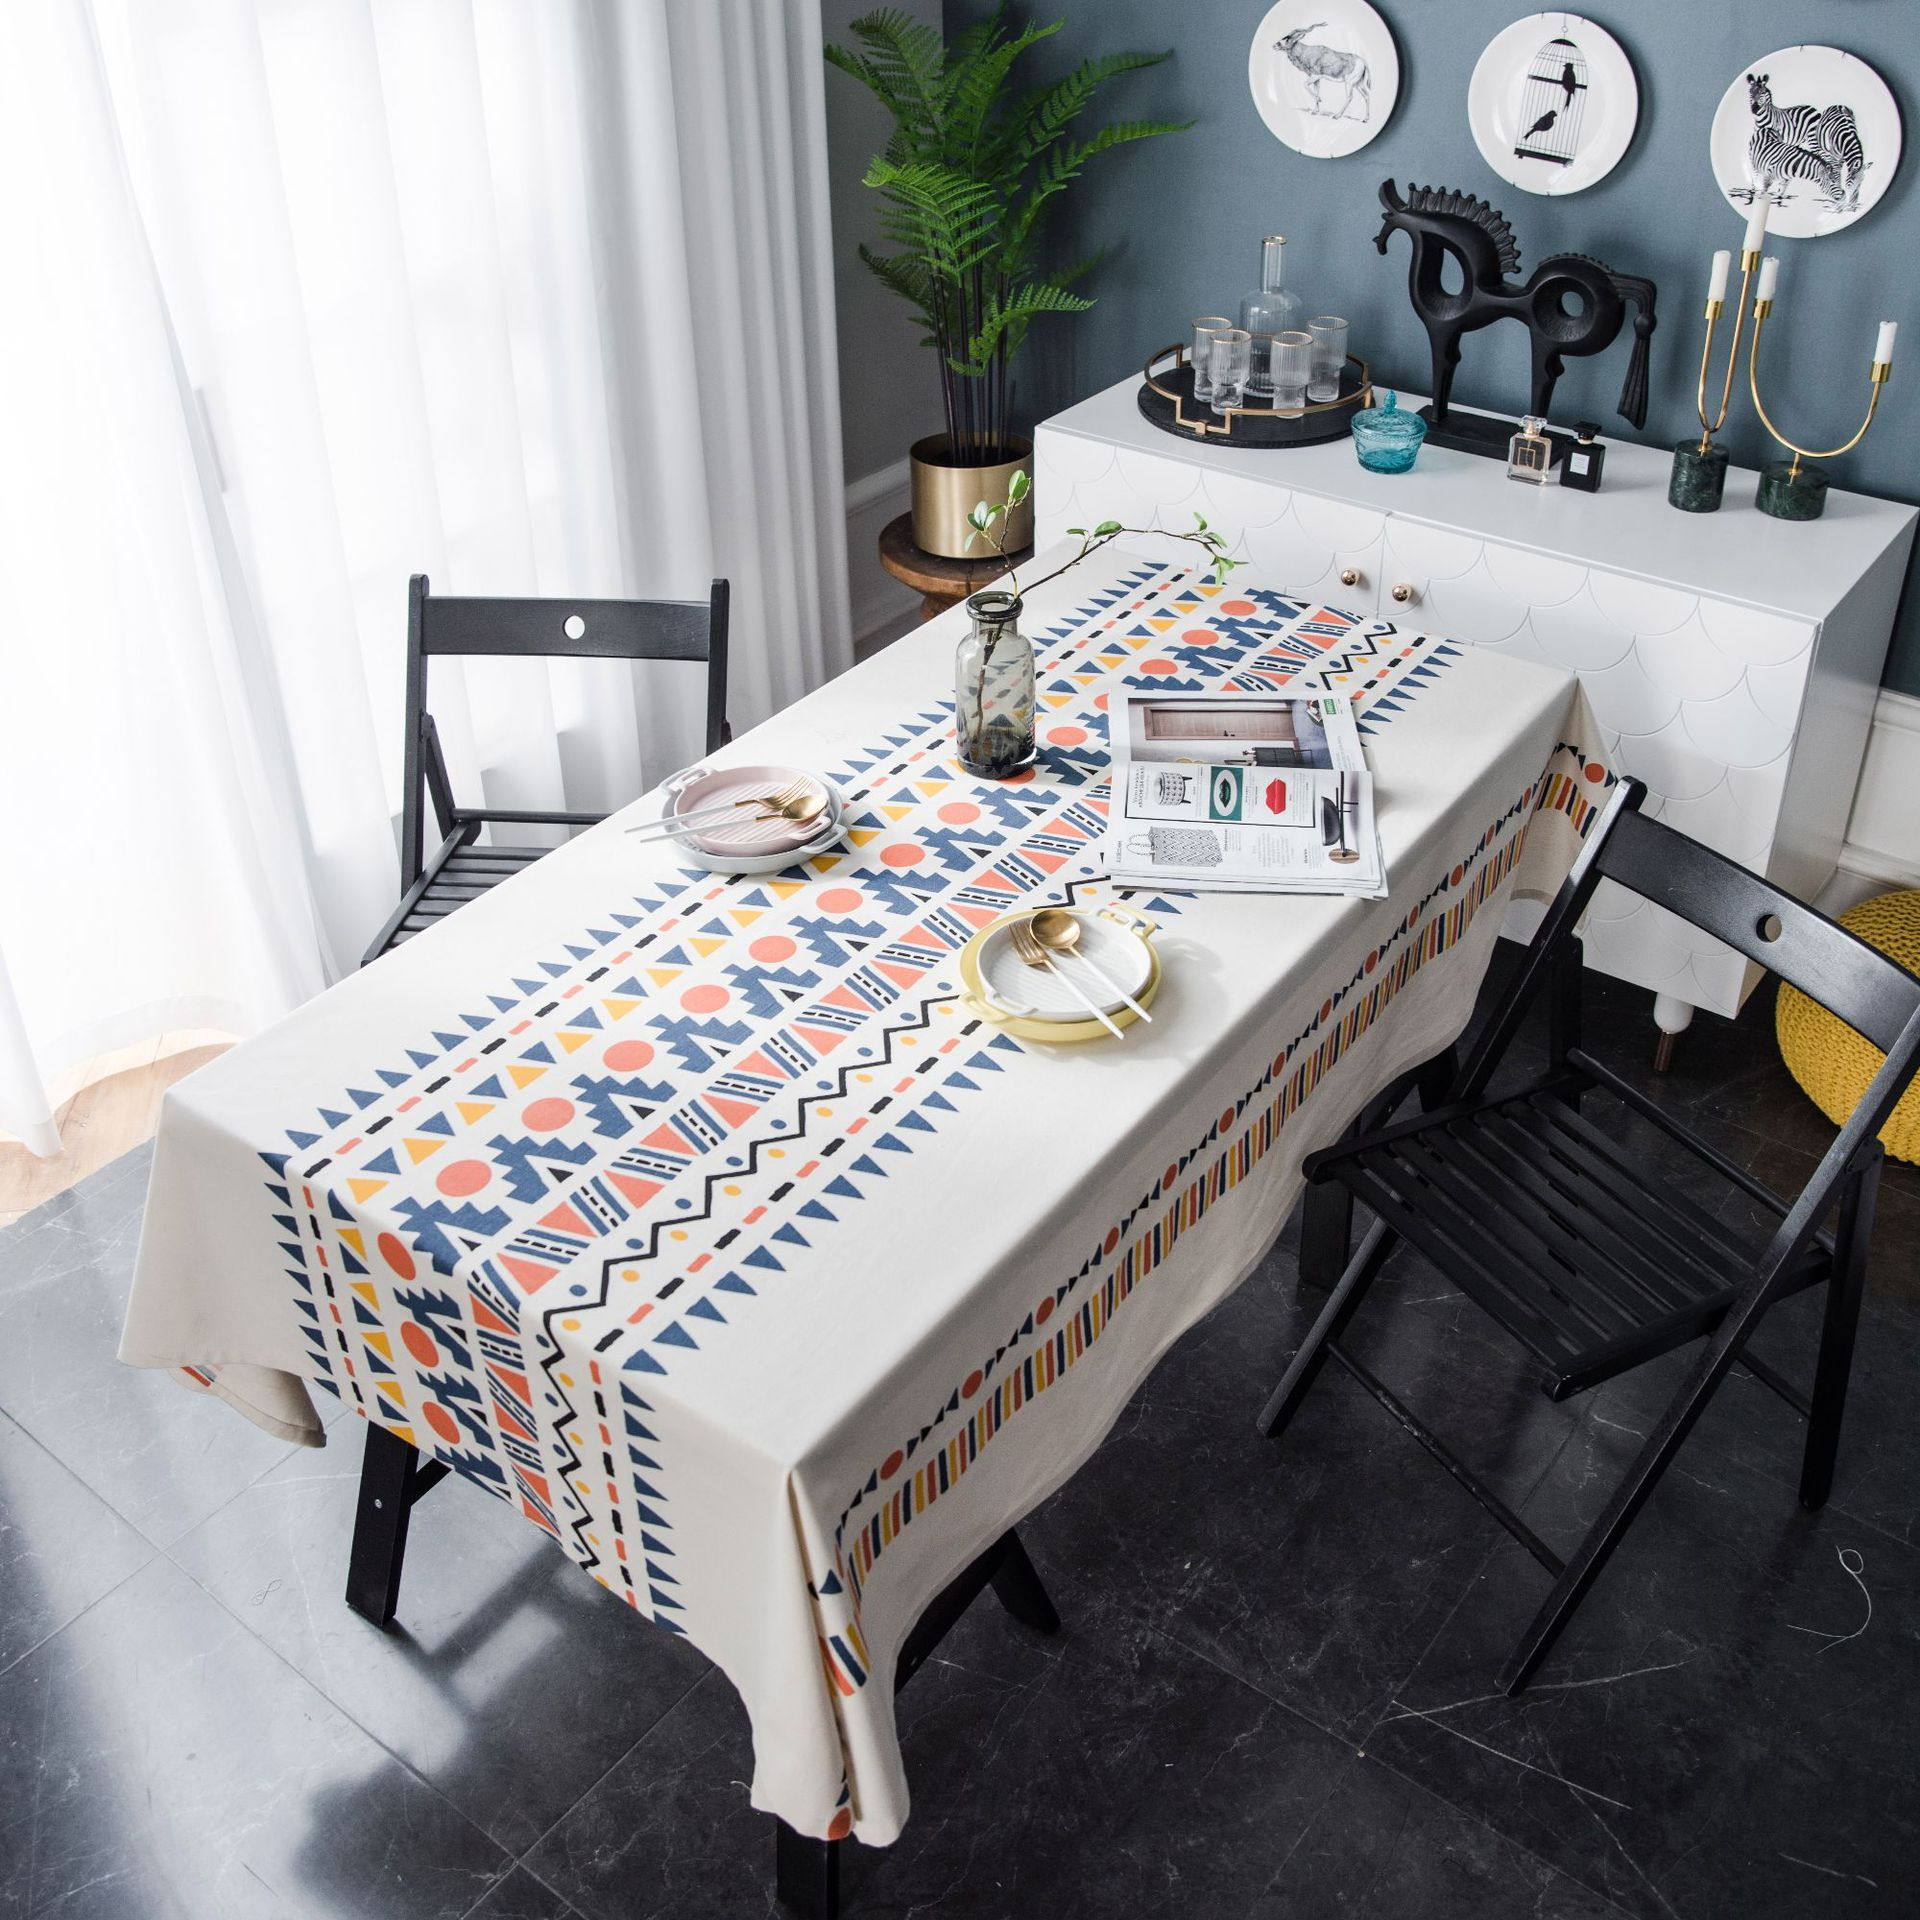 Bohemia Tablecloth Water -tight Wax Rectangular Wallpaper Home Table Cover Protector Party Banquet Table Cover Dining